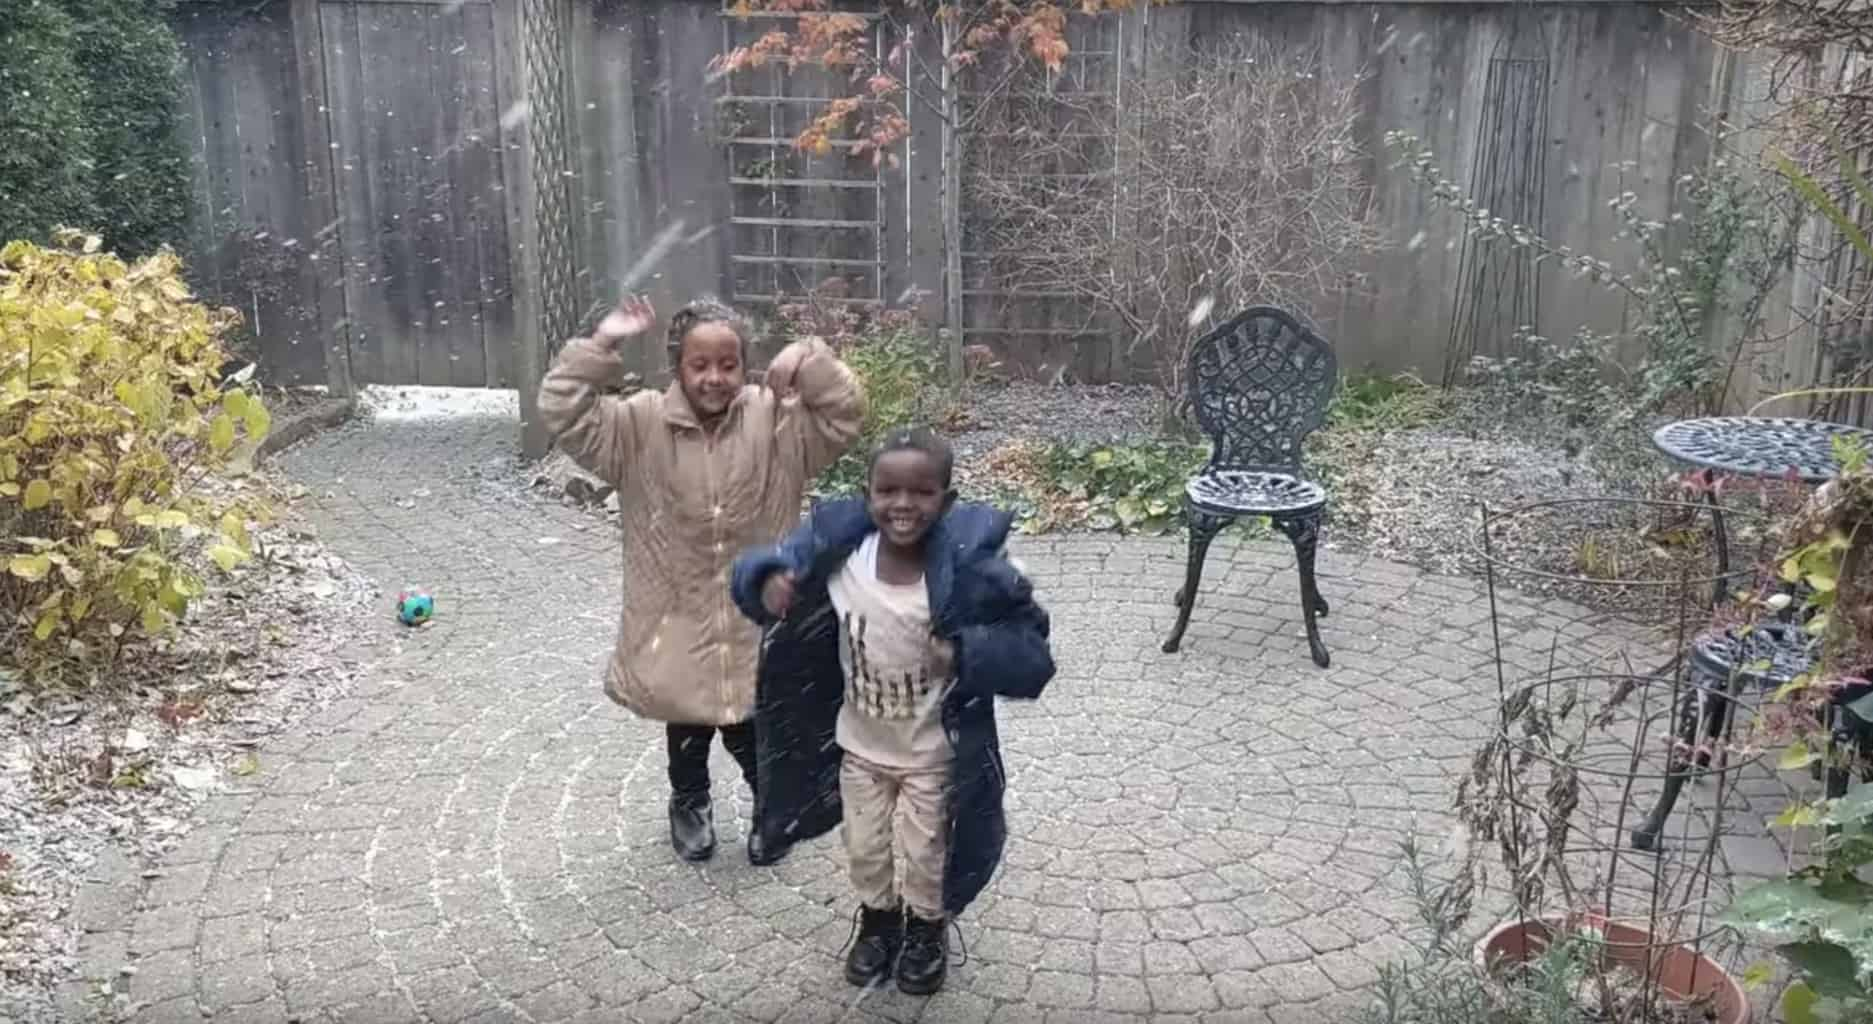 Eritrean children see snow for the first time and dance in the falling snow